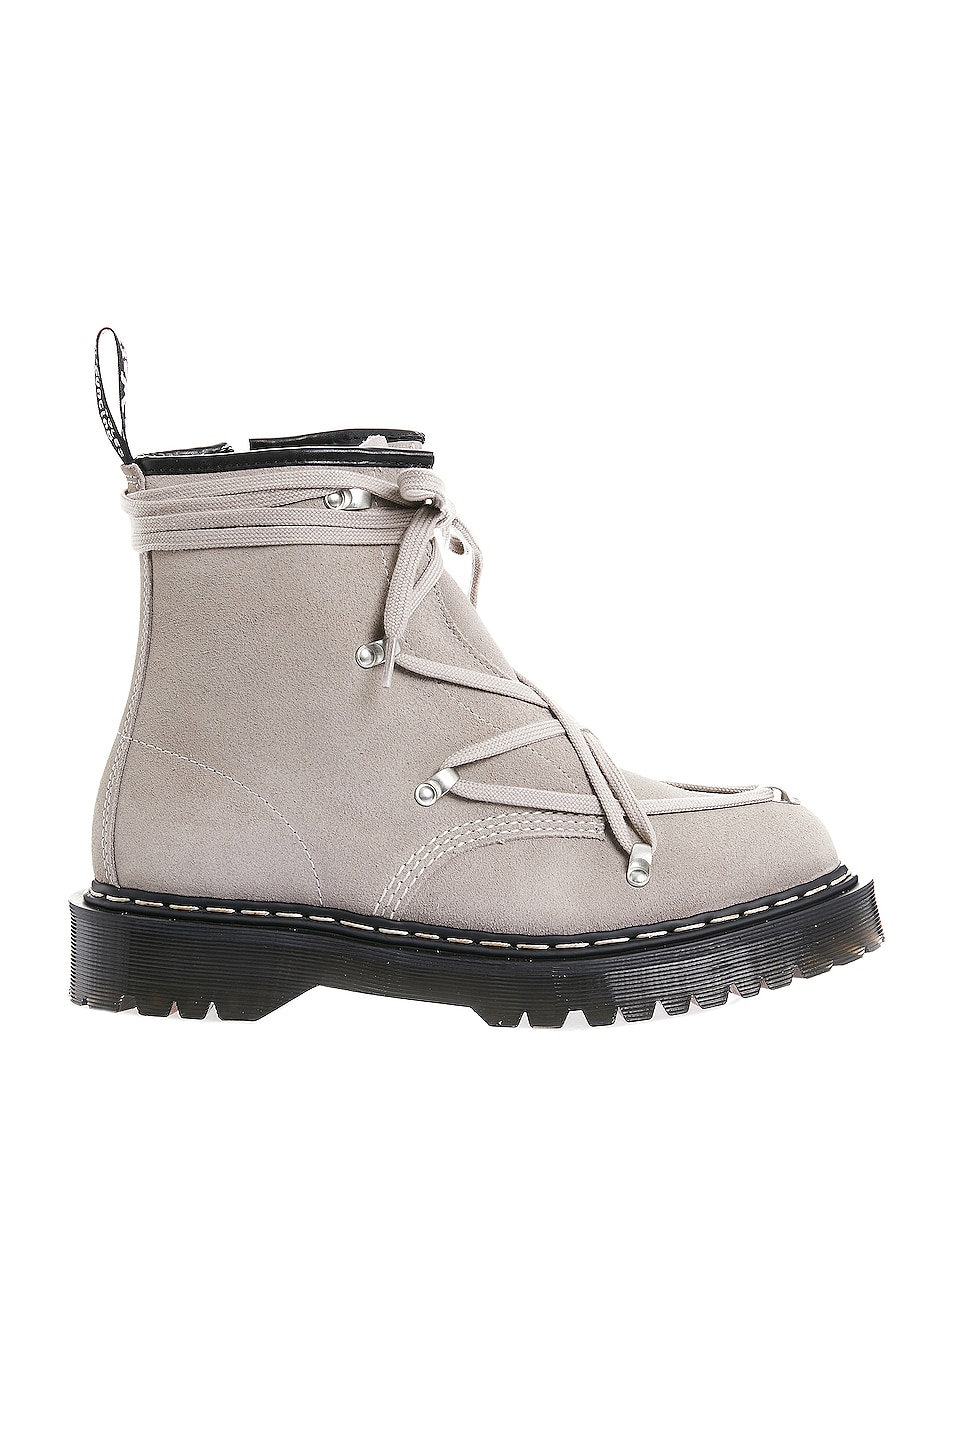 Image 1 of Rick Owens x Dr. Martens Bex Sole Boot in Pearl